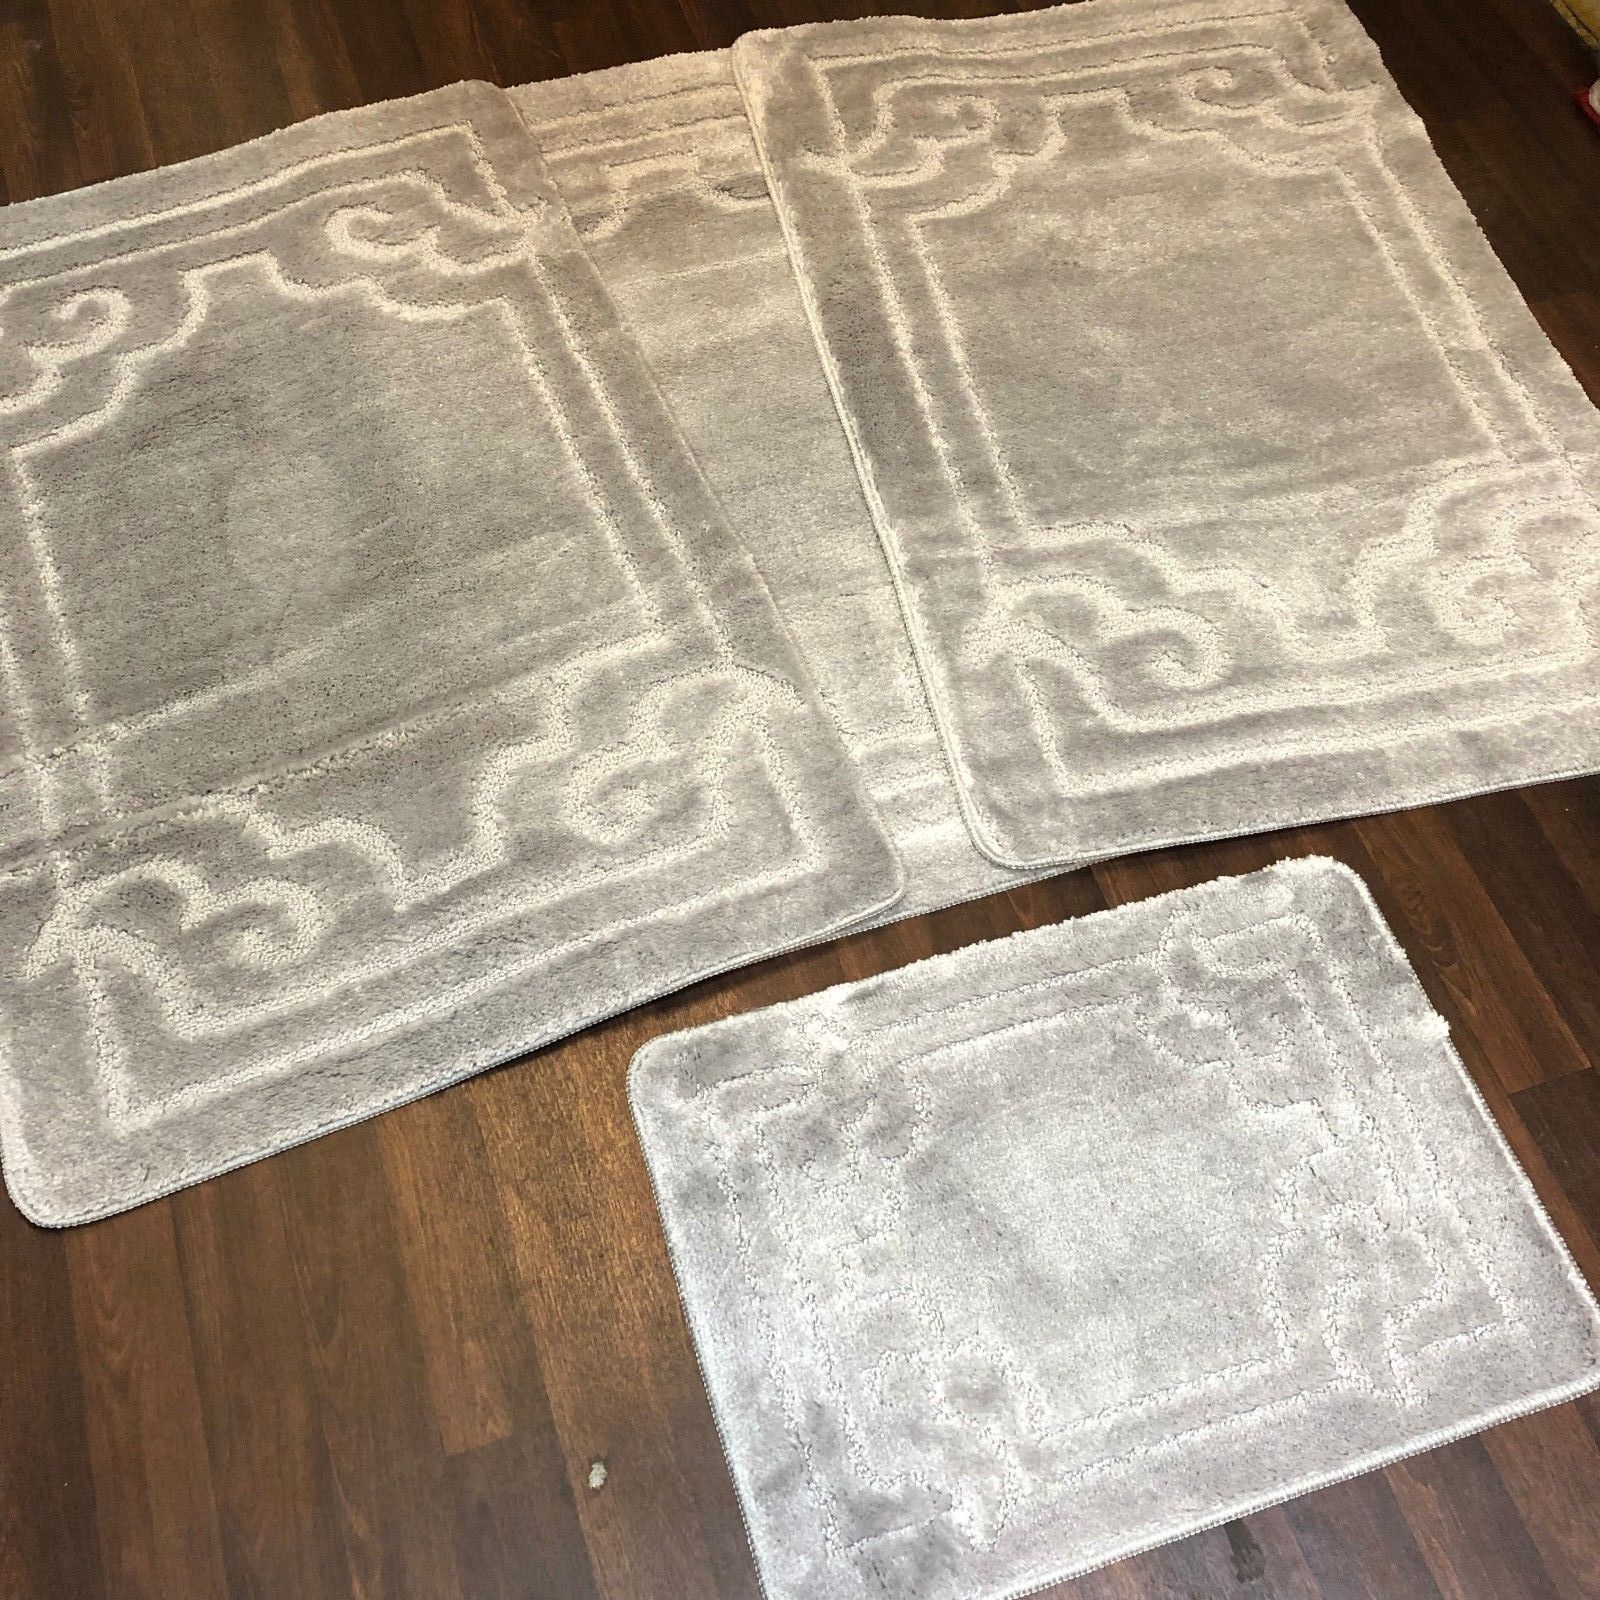 ROMANY WASHABLES GYPSY MATS 4PC SETS NON SLIP GERMAN BOARDER SILVER GREY CARPETS